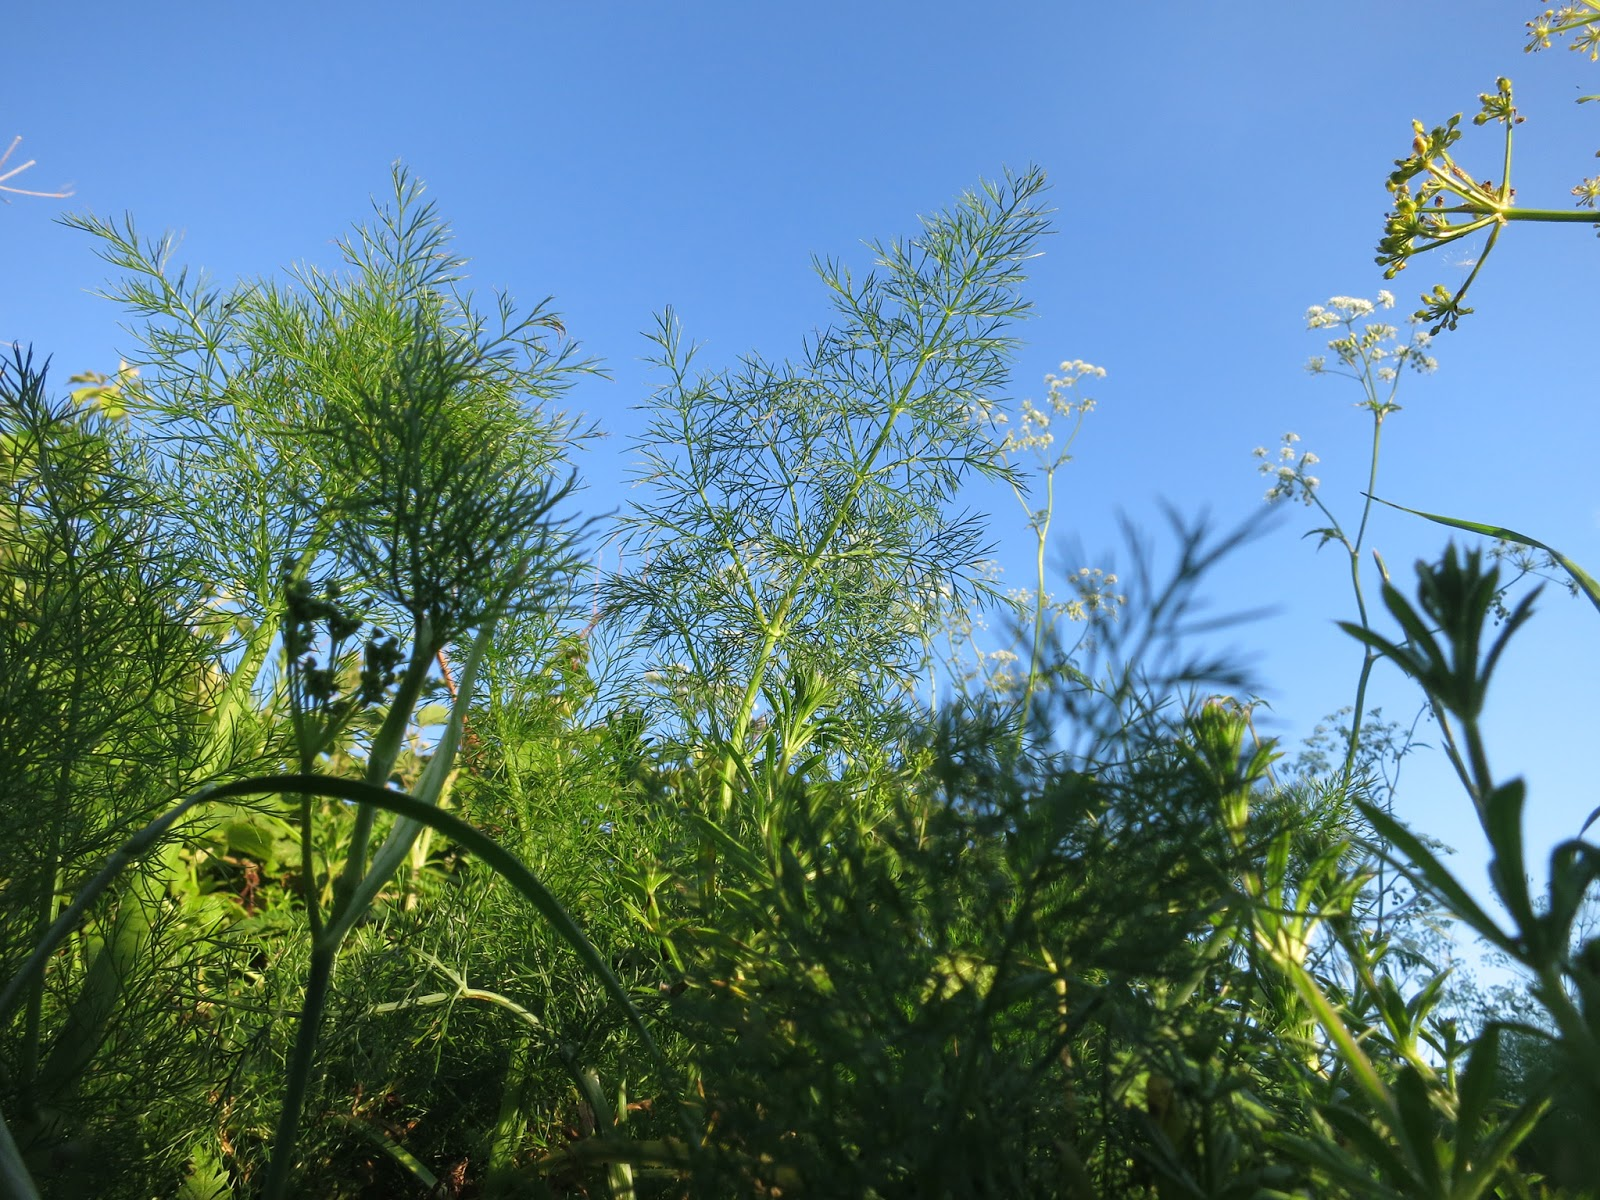 Fennel in hedgerow against blue sky